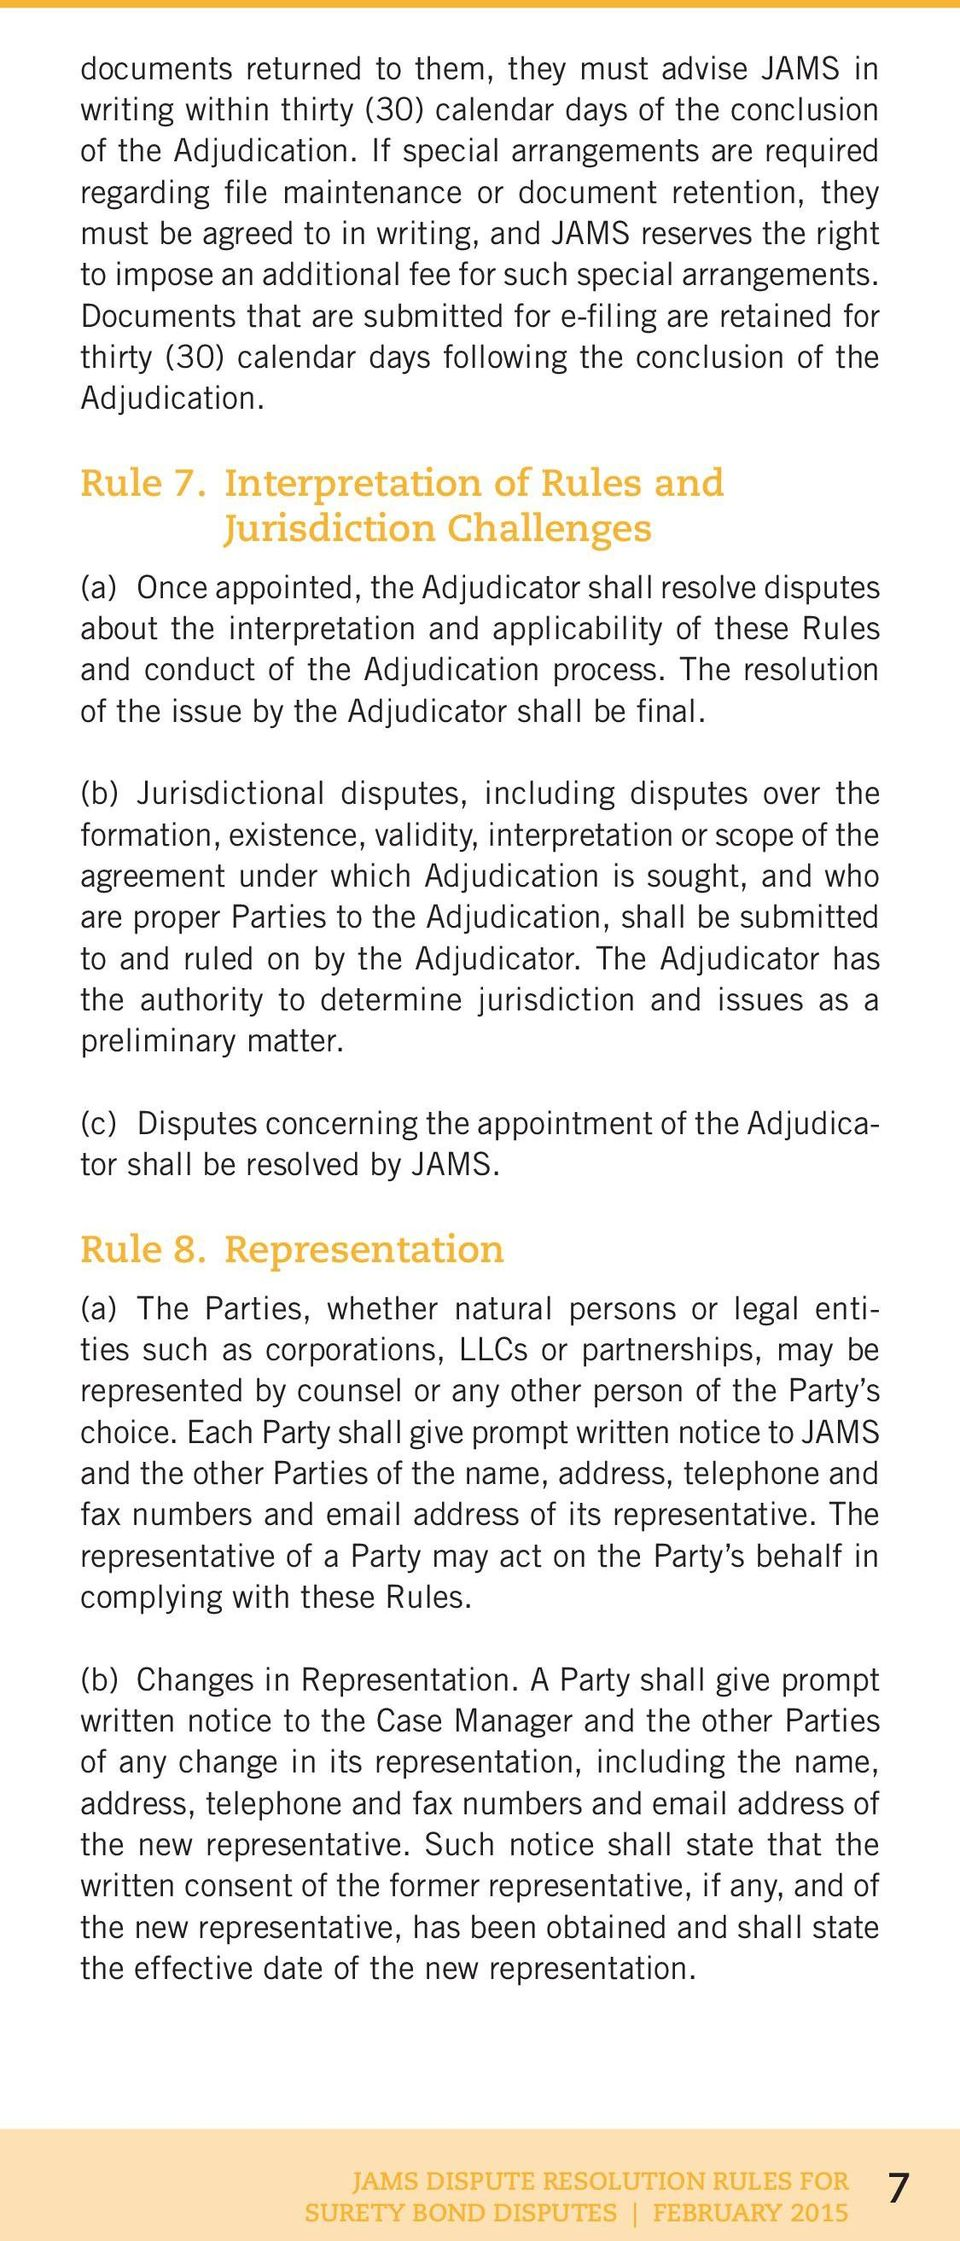 arrangements. Documents that are submitted for e-filing are retained for thirty (30) calendar days following the conclusion of the Adjudication. Rule 7.